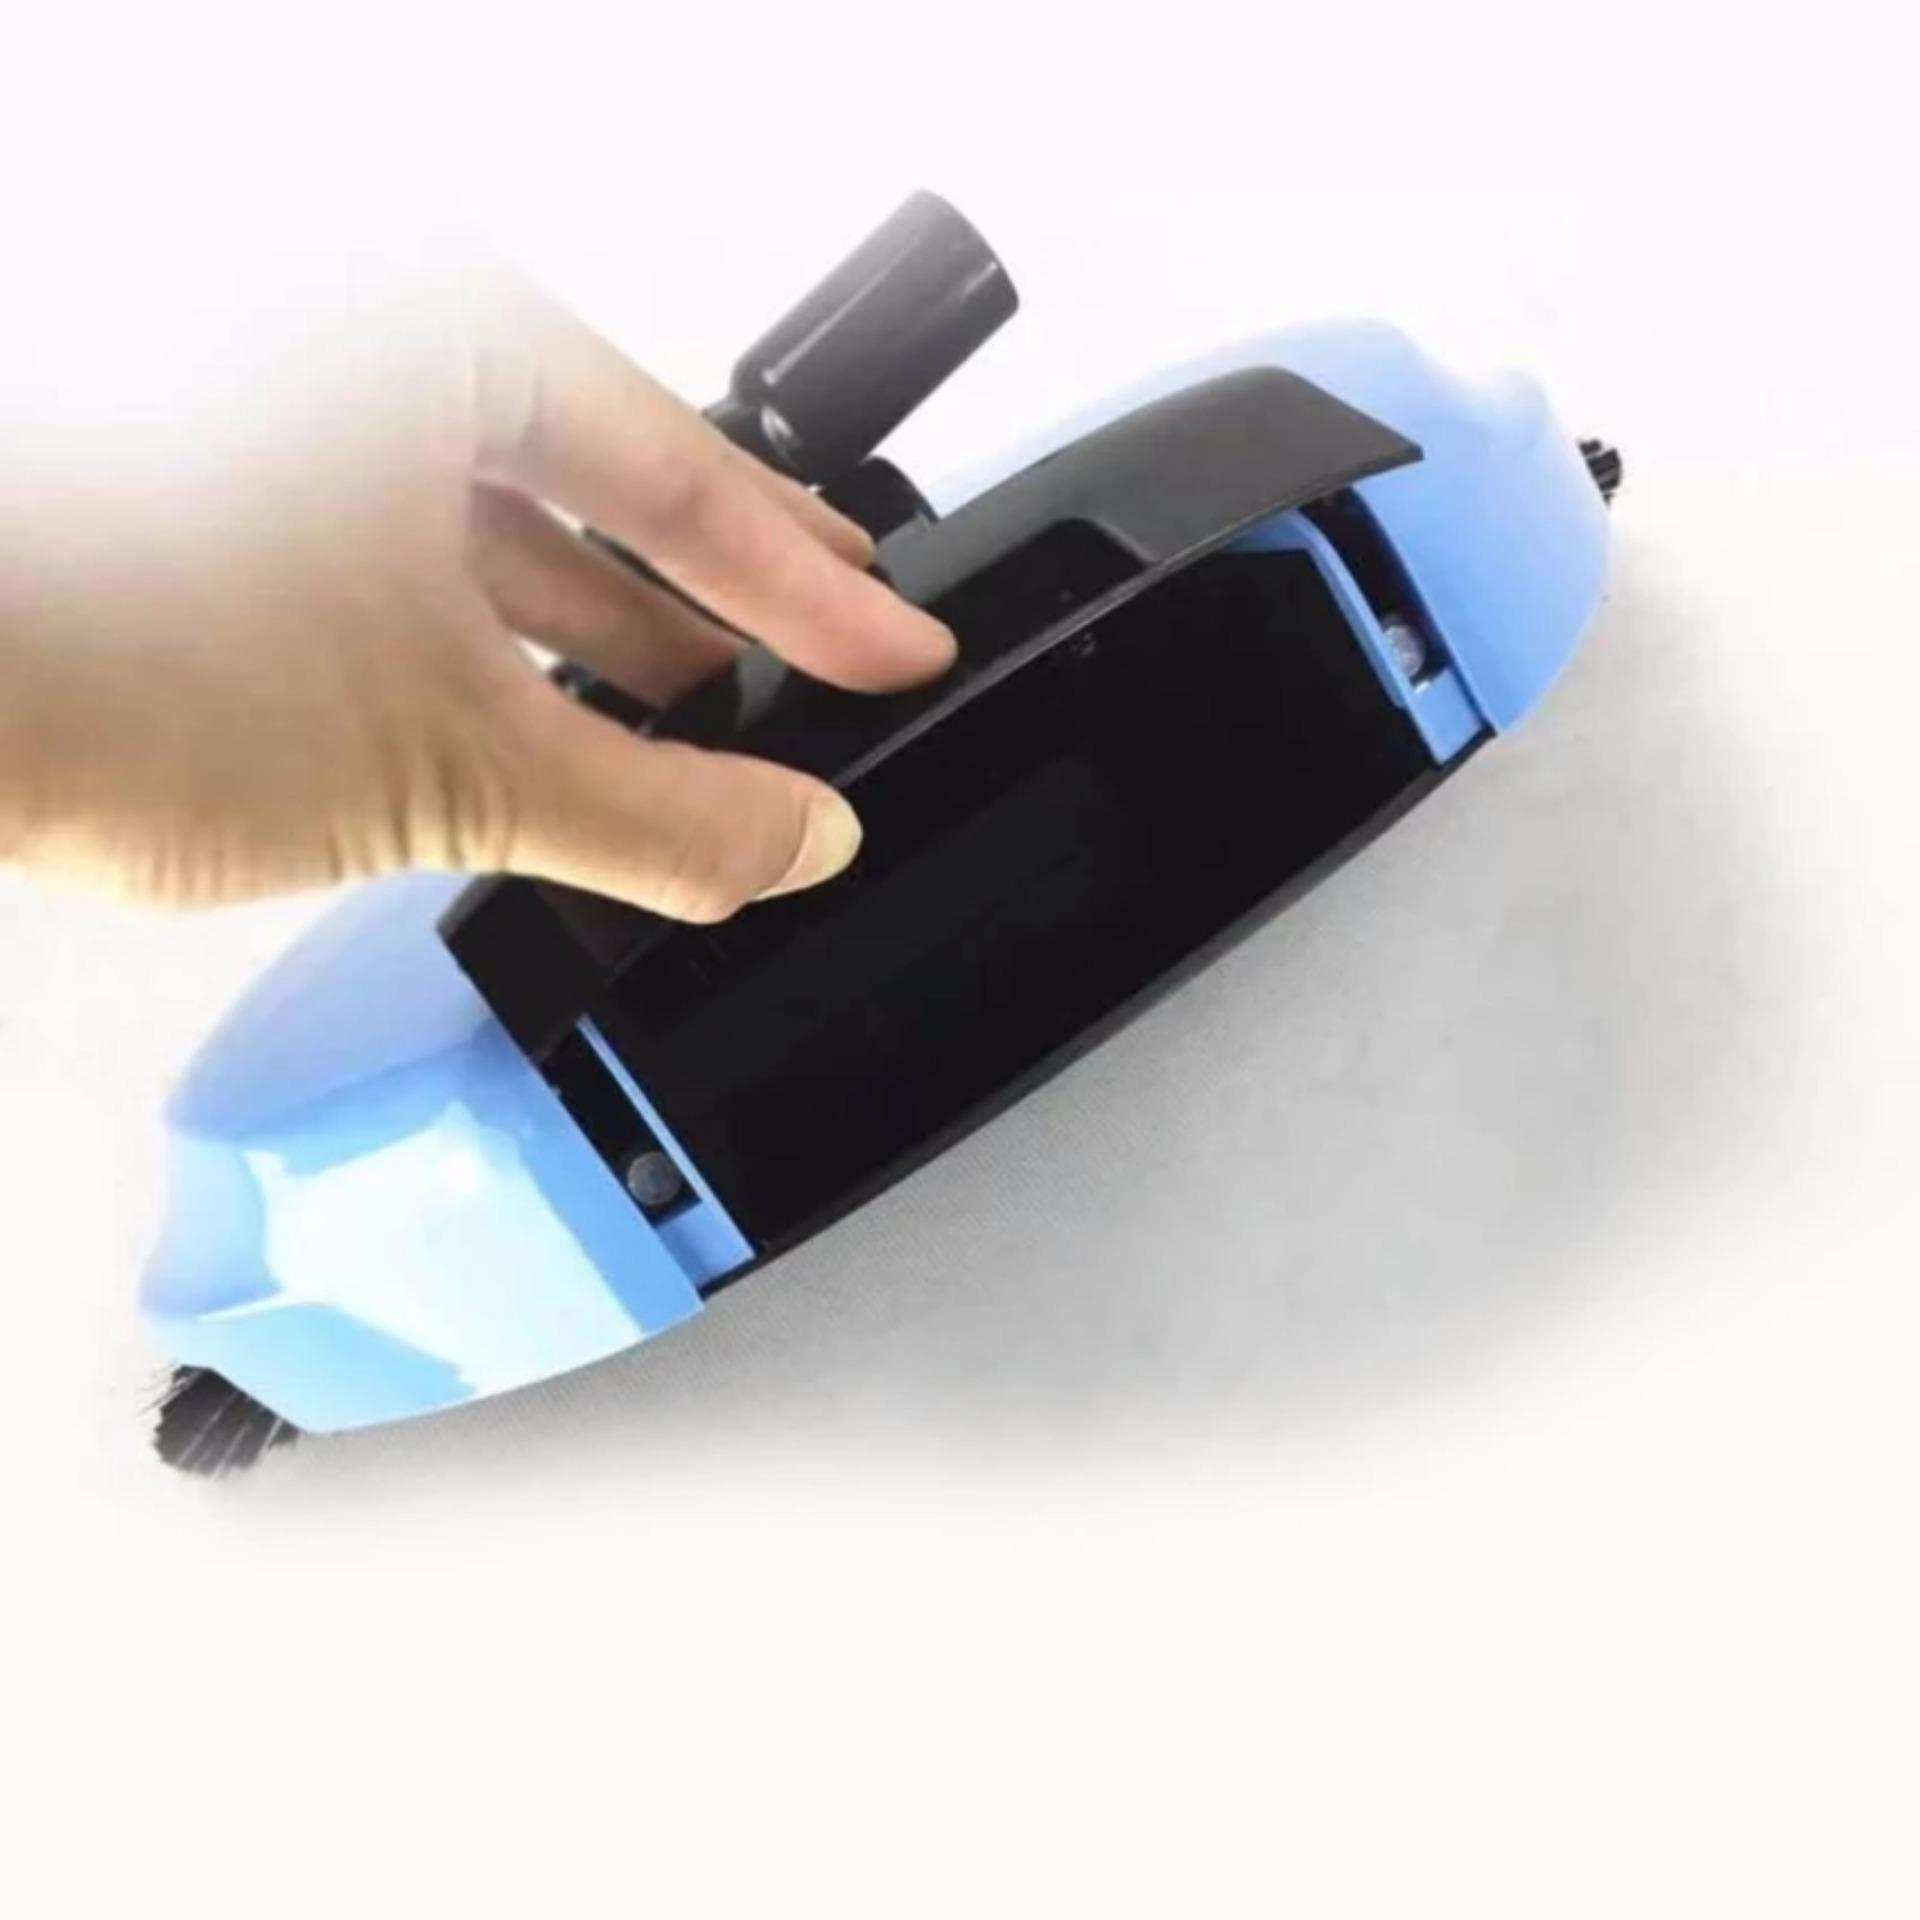 ABS Wonder Spin Broom and Dust Pan All in One (Blue)